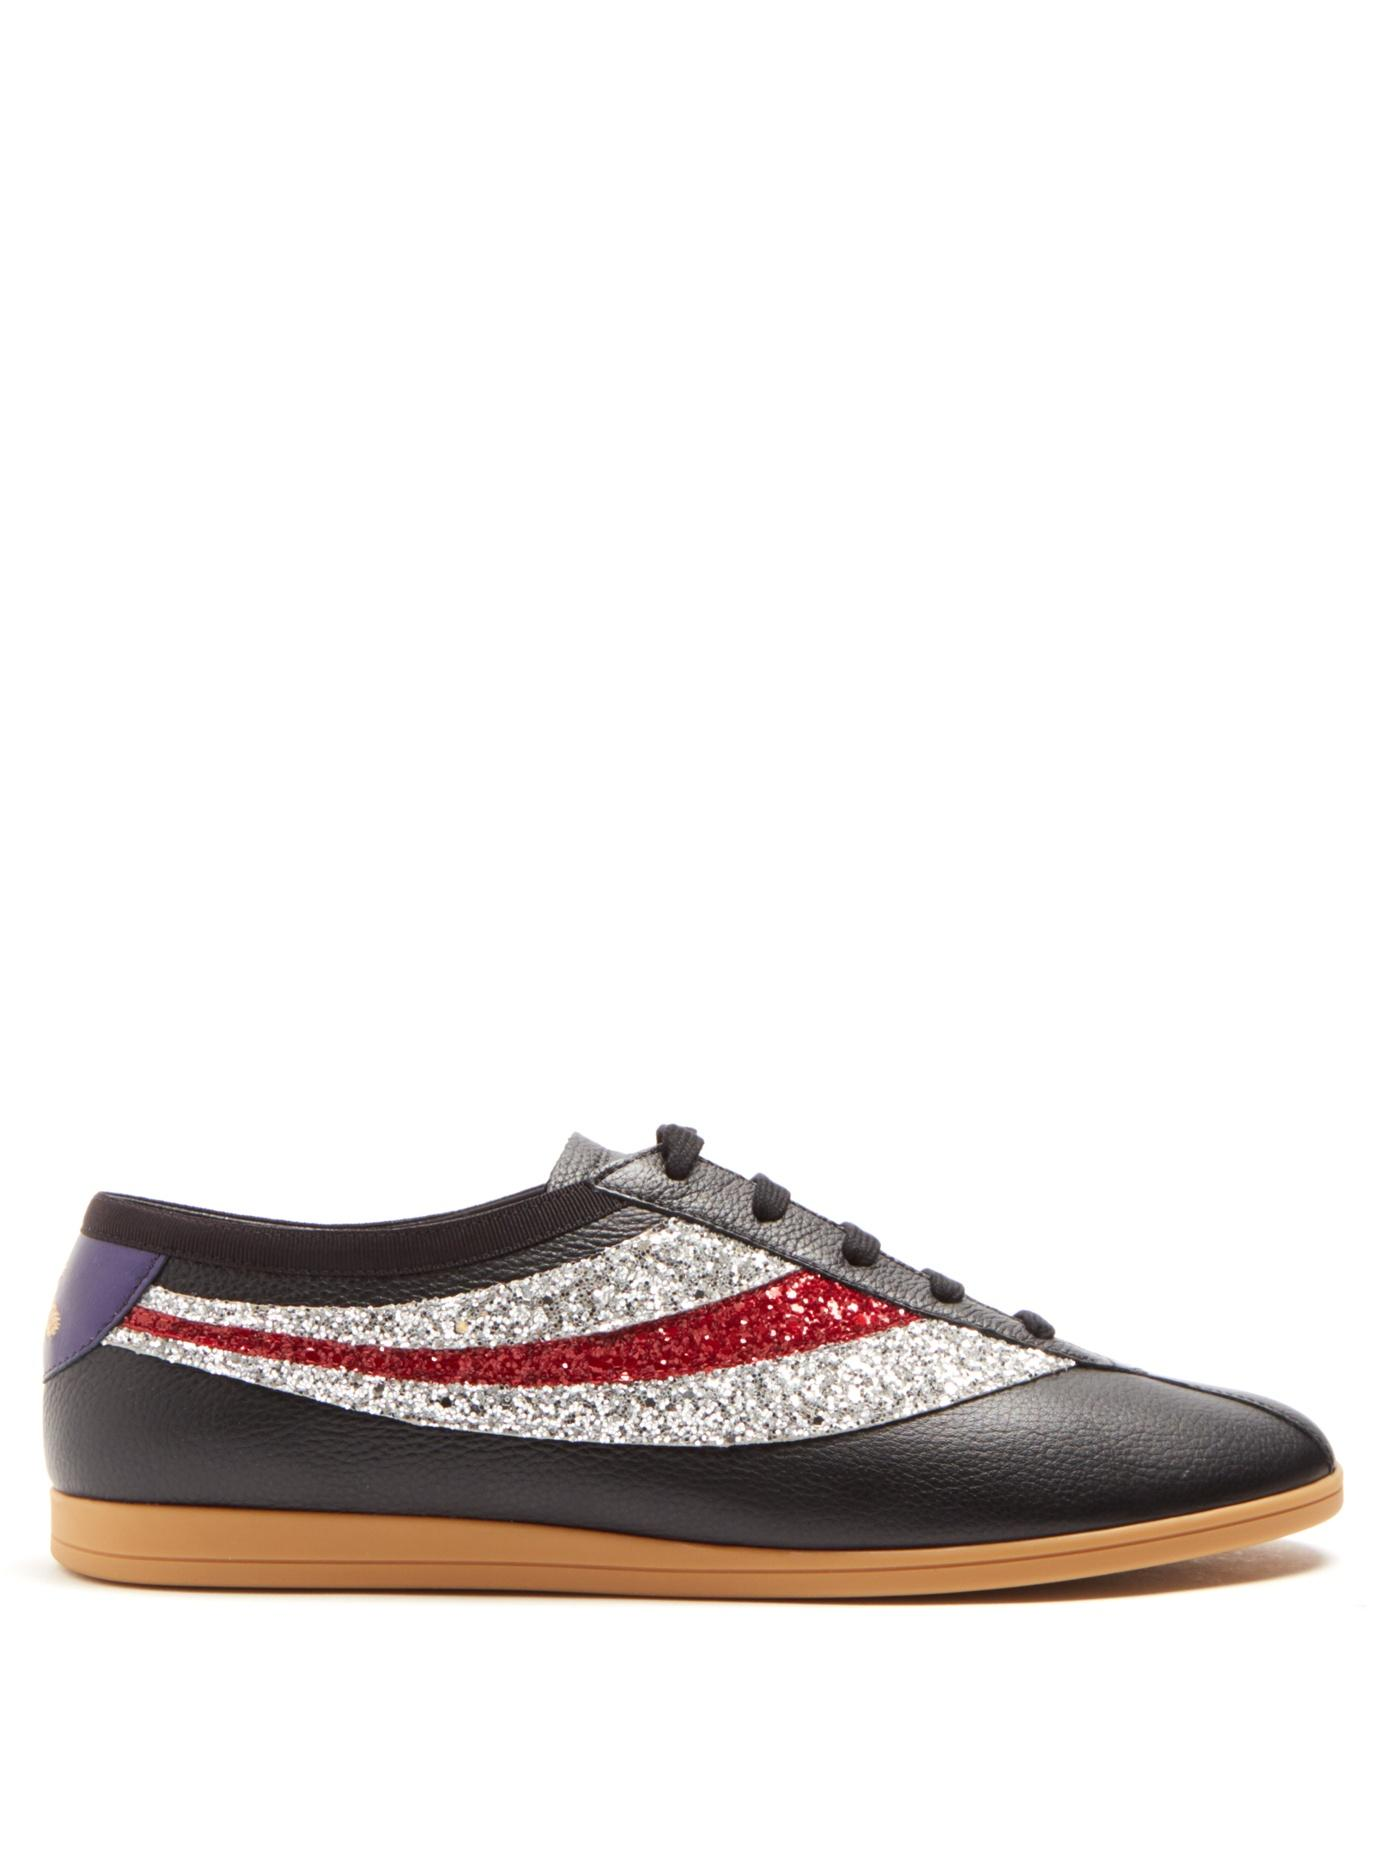 0b510bd197e Gucci - Falacer Grained Leather Low Top Trainers - Mens - Black Multi